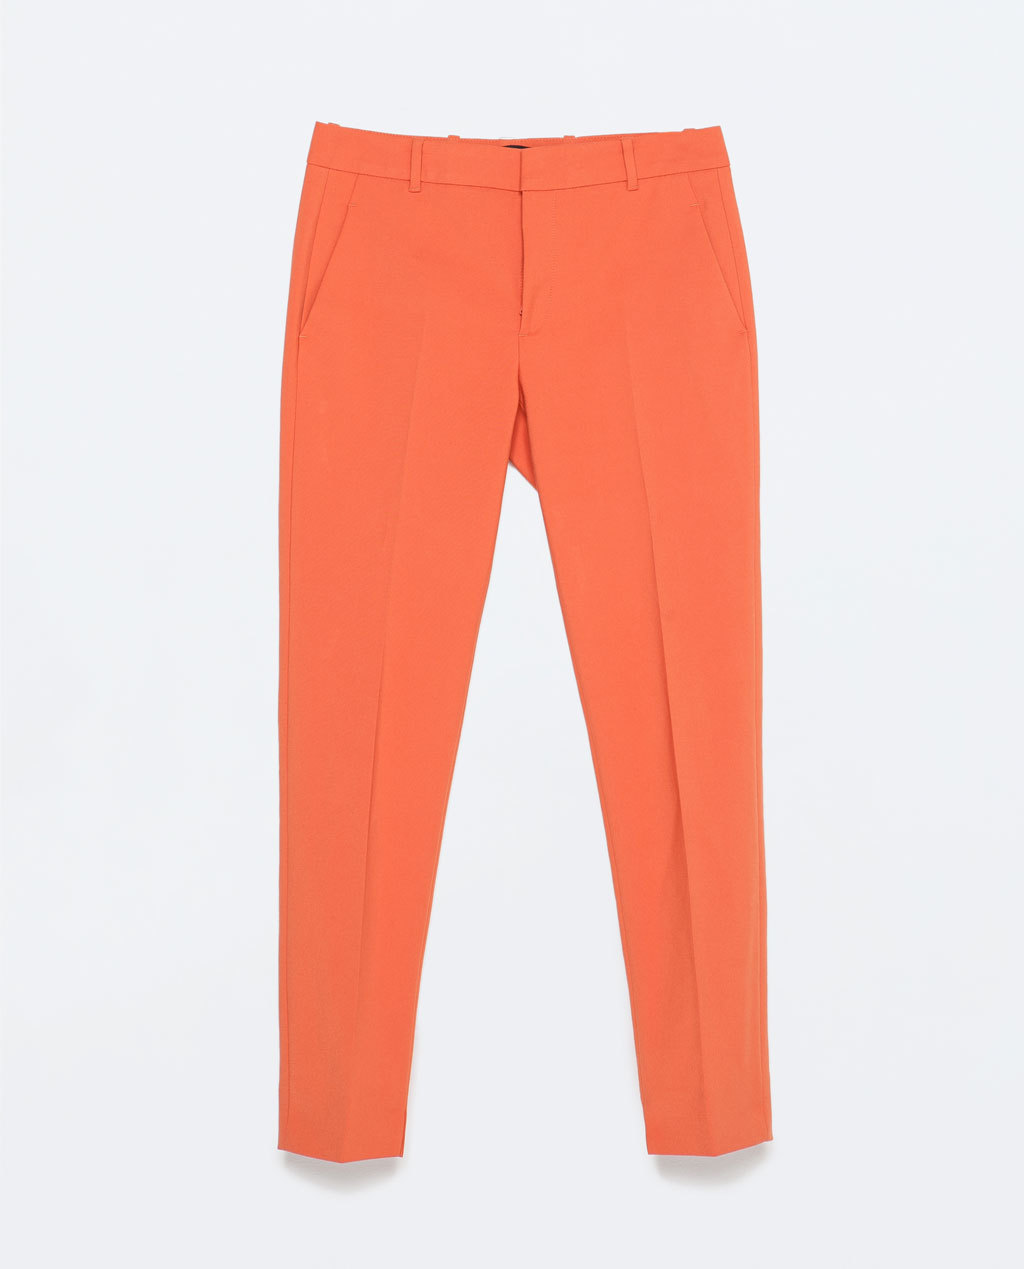 Cotton Cigarette Trousers - pattern: plain; style: capri; waist: low rise; predominant colour: bright orange; occasions: casual, evening, creative work; length: ankle length; fibres: cotton - mix; fit: slim leg; pattern type: fabric; texture group: woven light midweight; season: s/s 2015; wardrobe: highlight